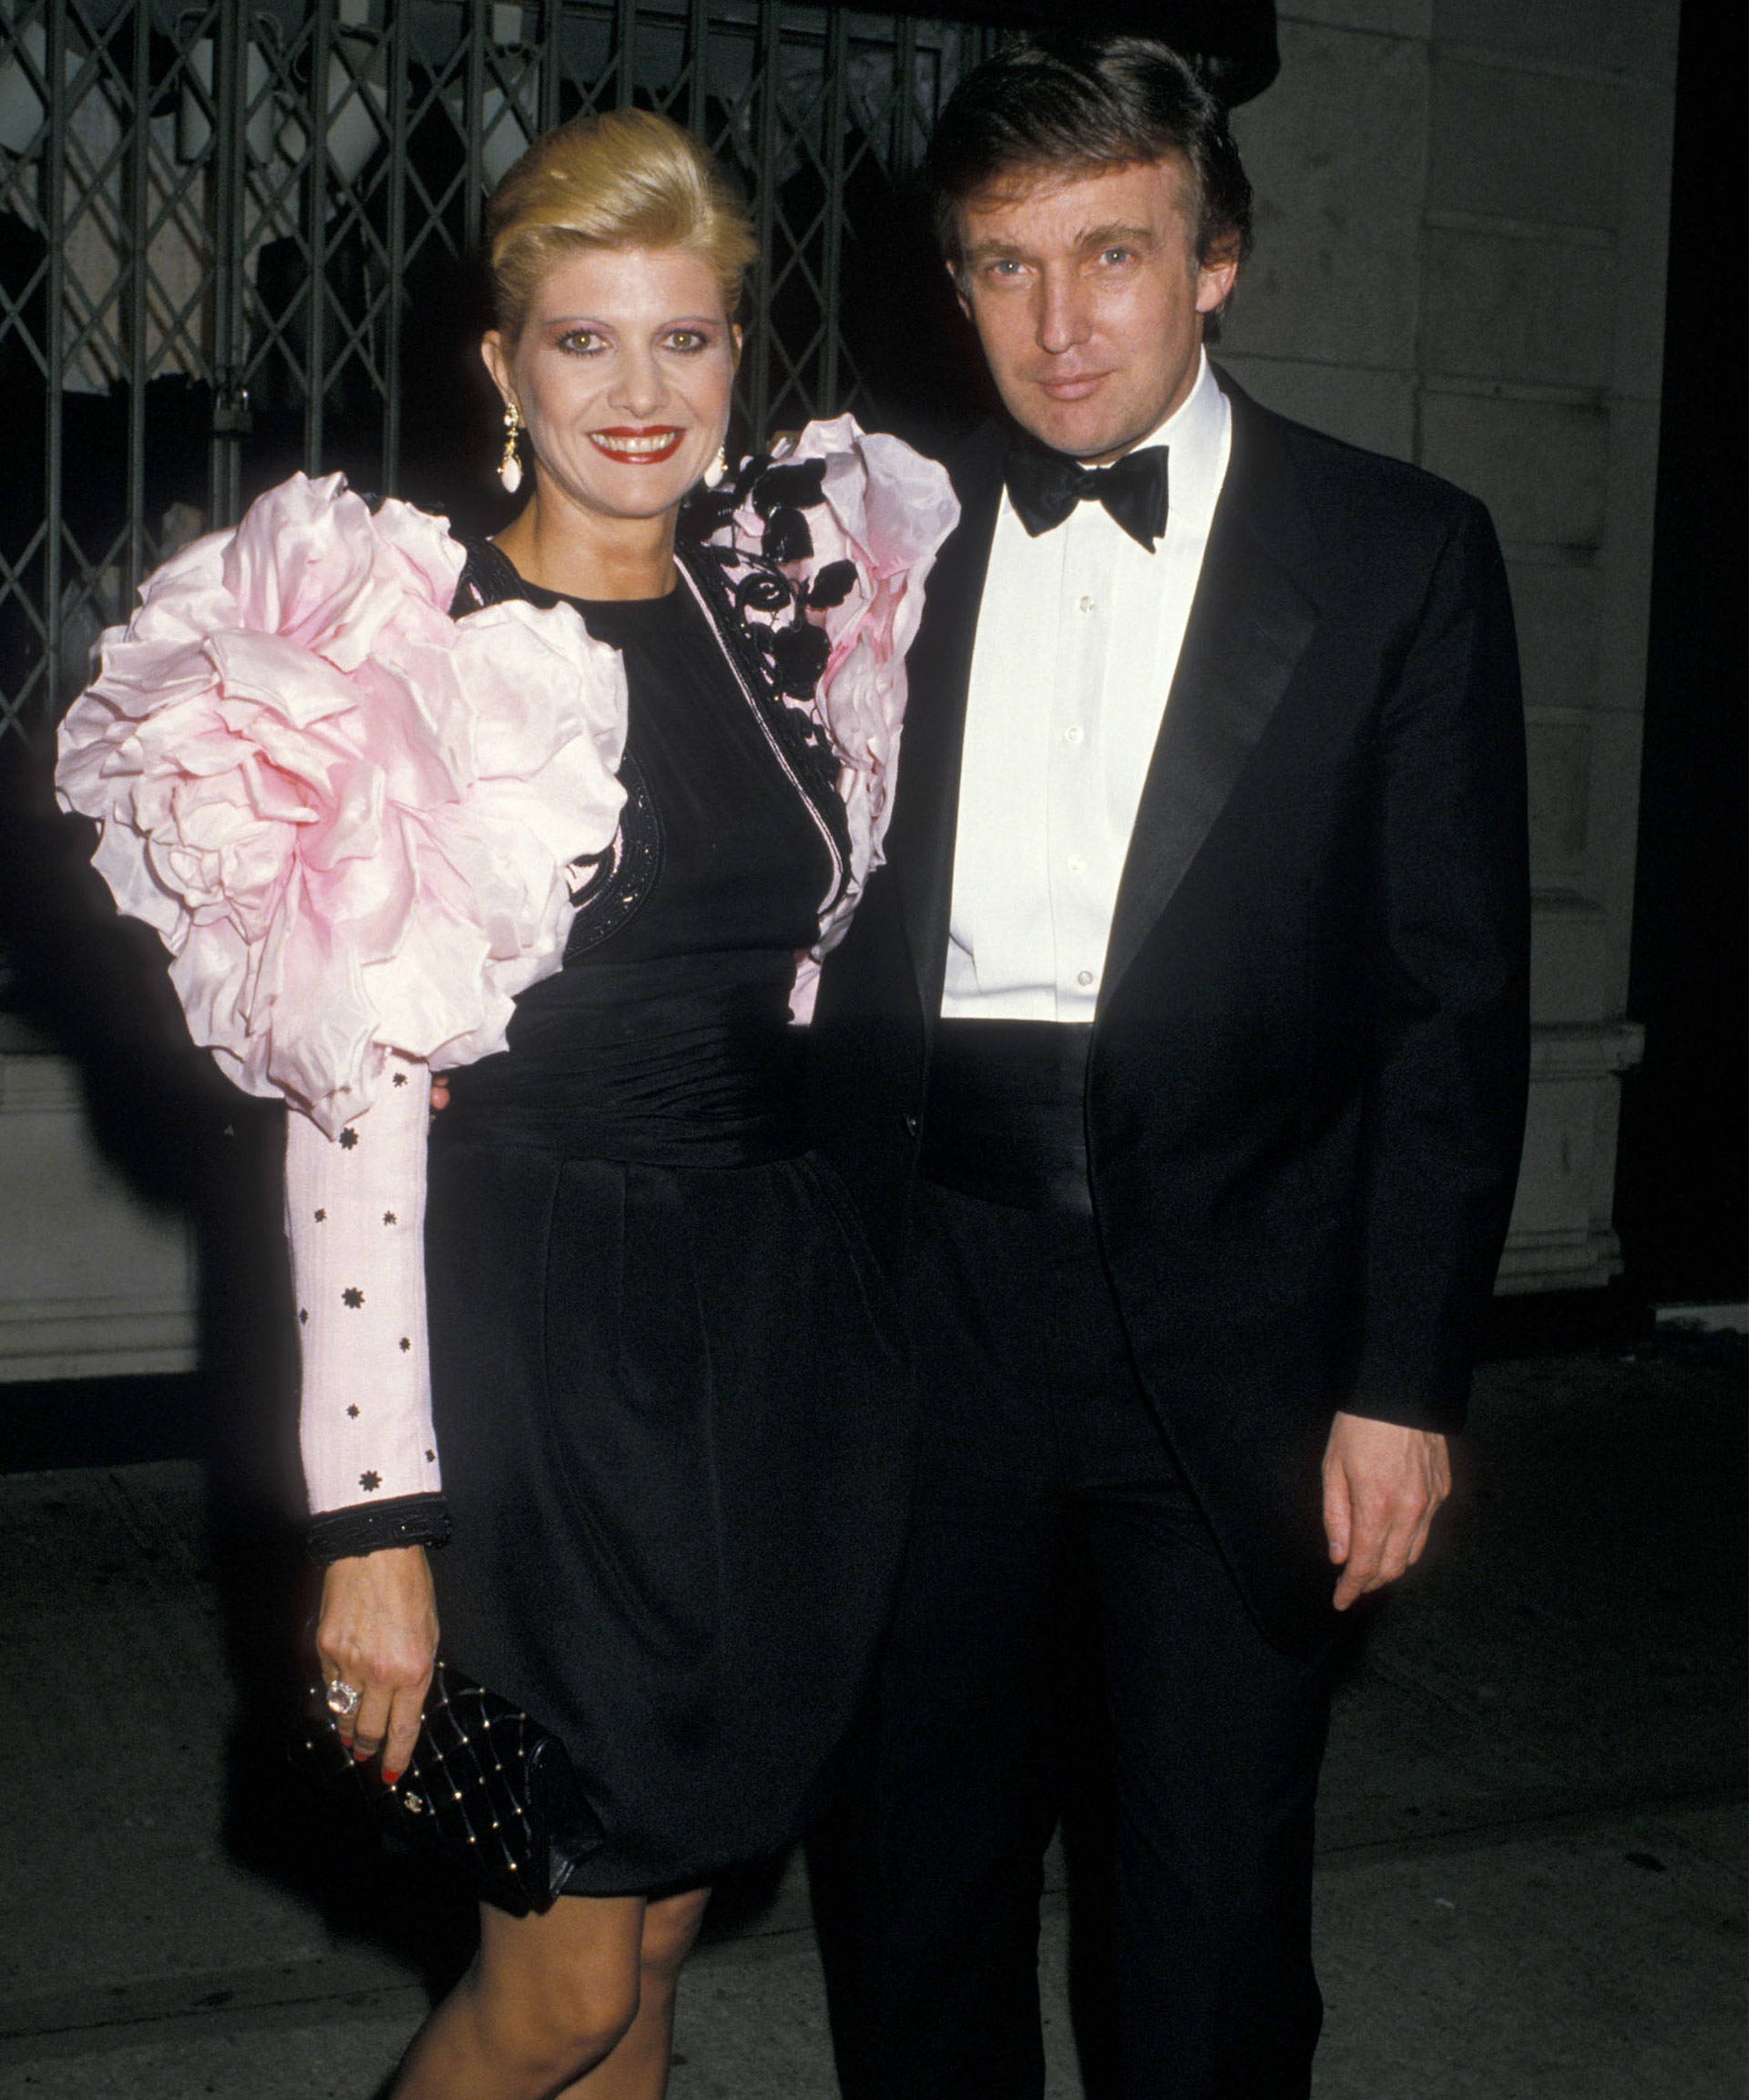 Ivana Trump Wants Donald to Make Her Ambassador to the Czech Republic